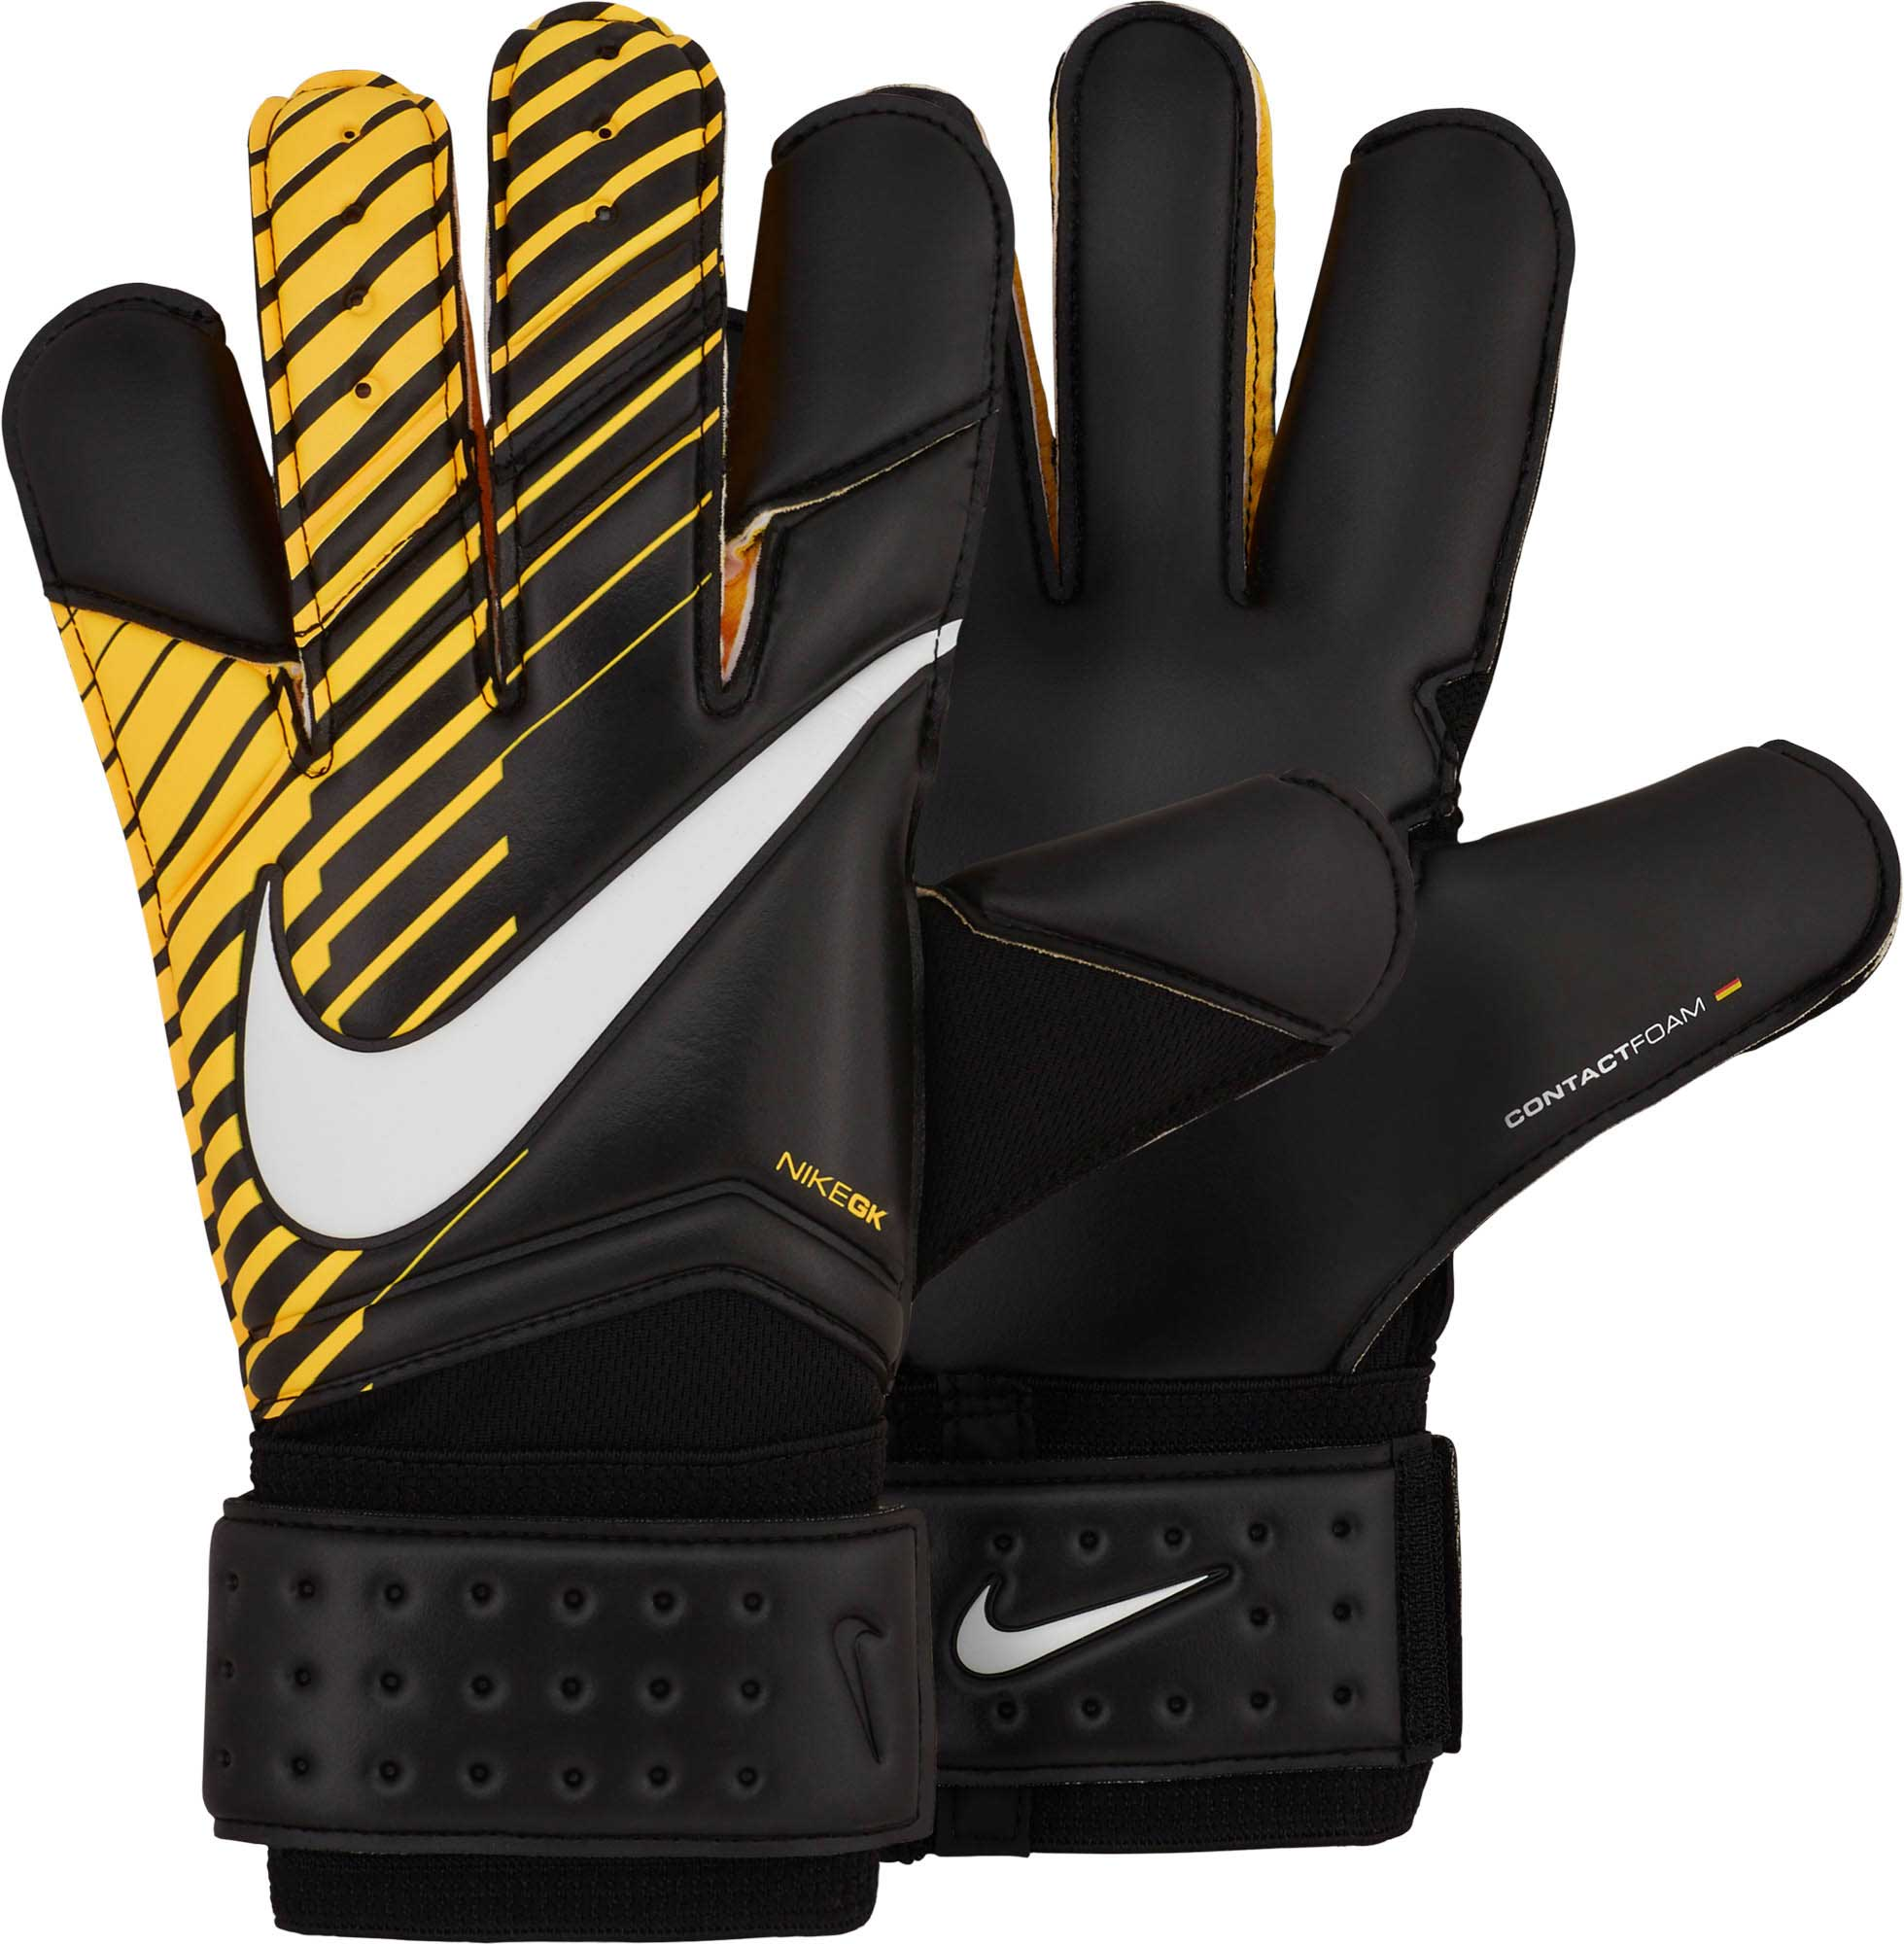 Nike Gloves Shoes Orange